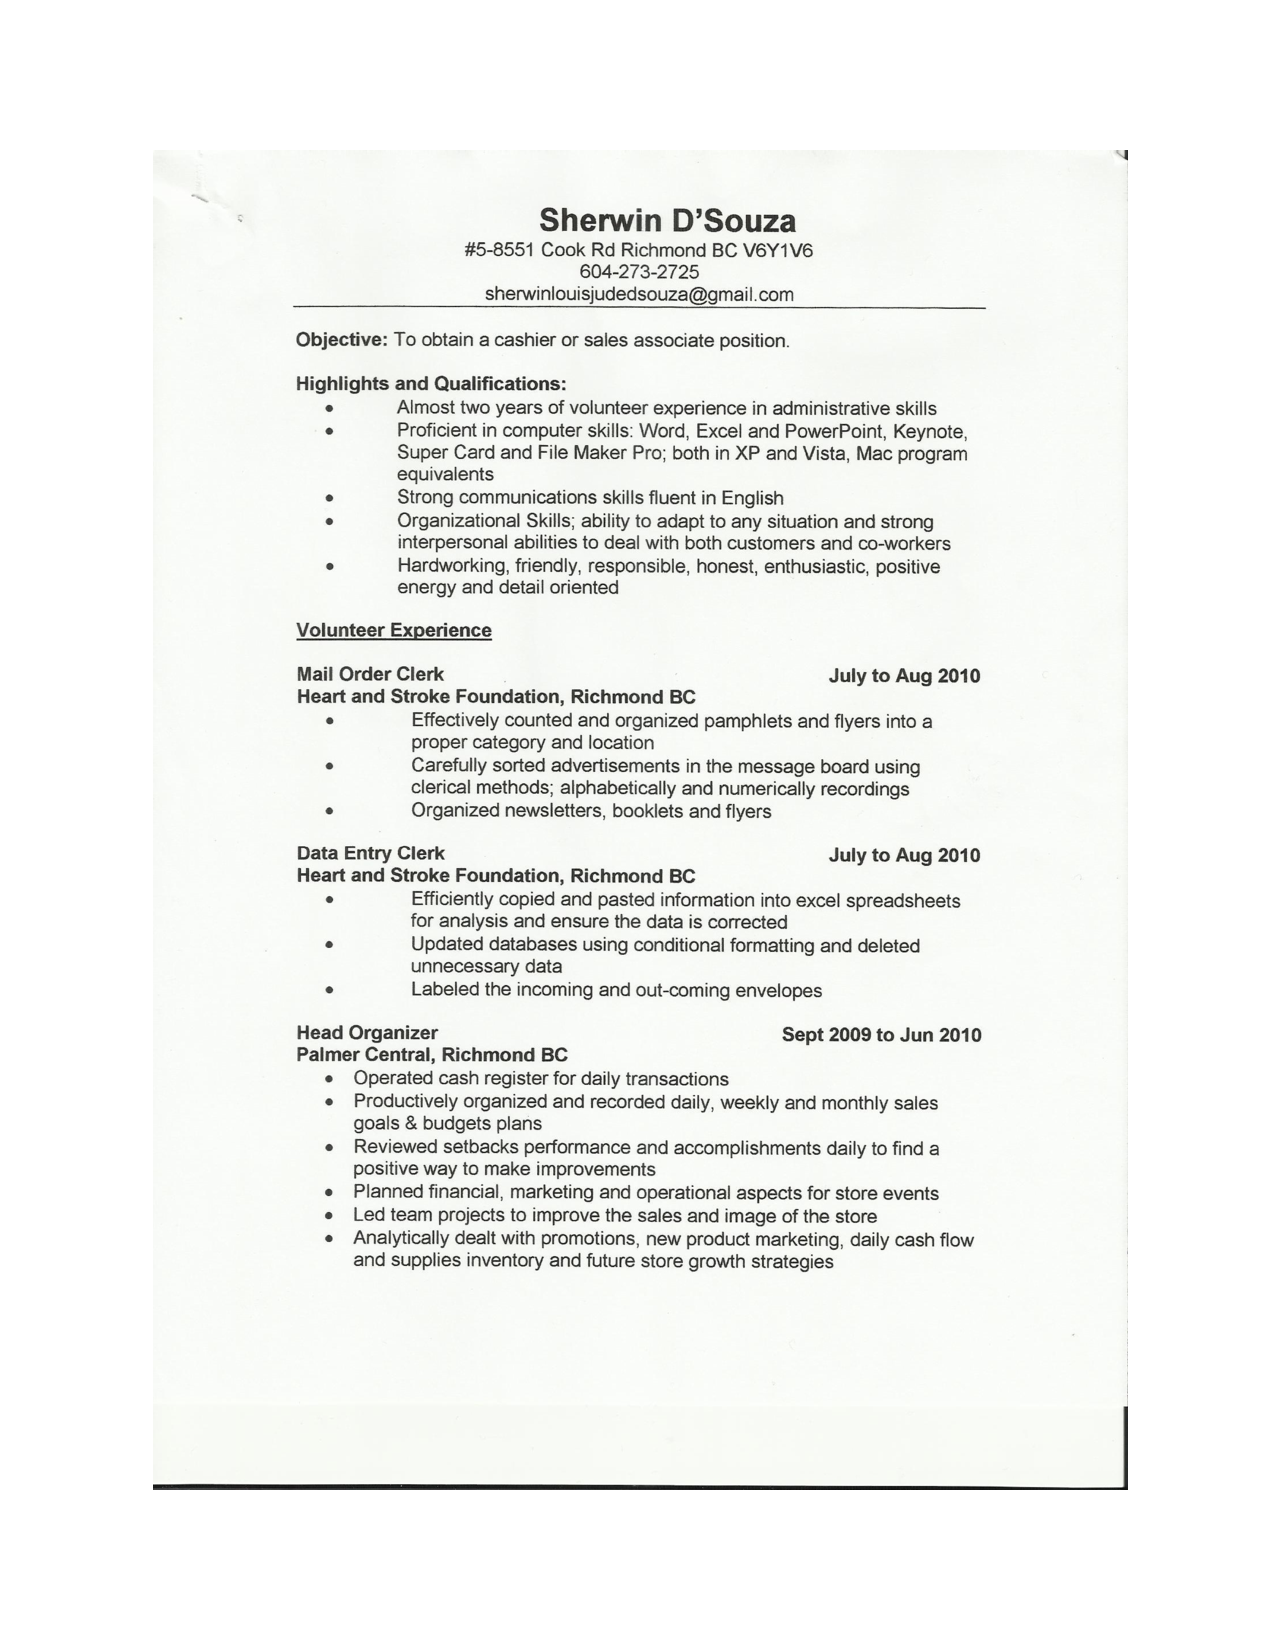 Sales Associate Resume Sample - http://www.resumecareer.info/sales ...